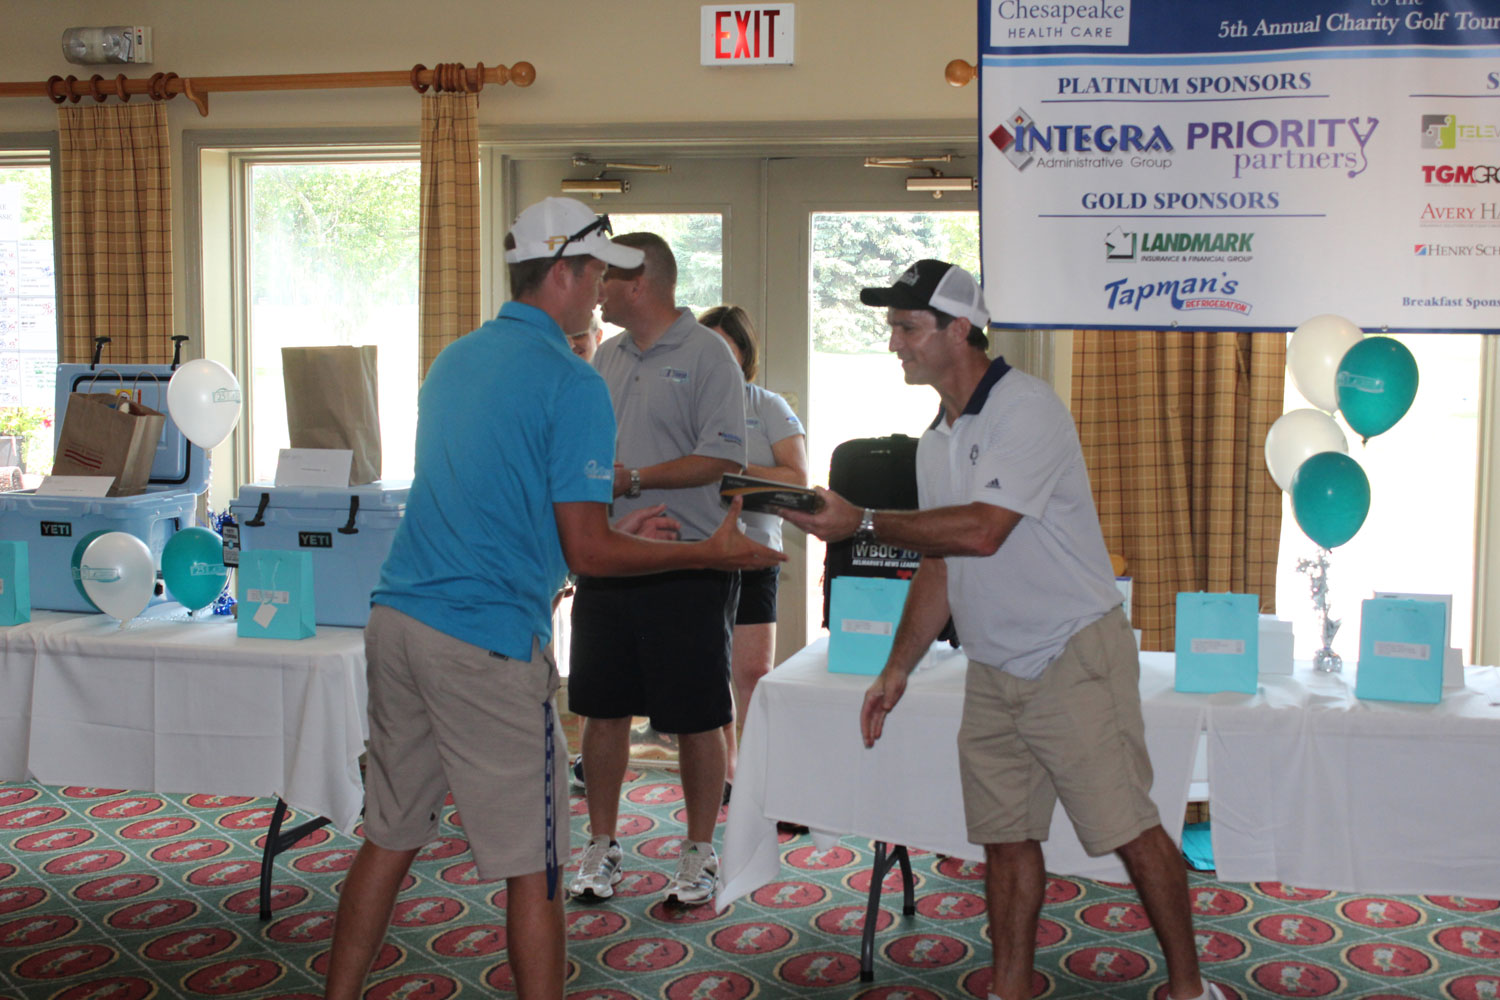 Chesapeake Health Care 6th Annual Golf Tournament gallery image #16